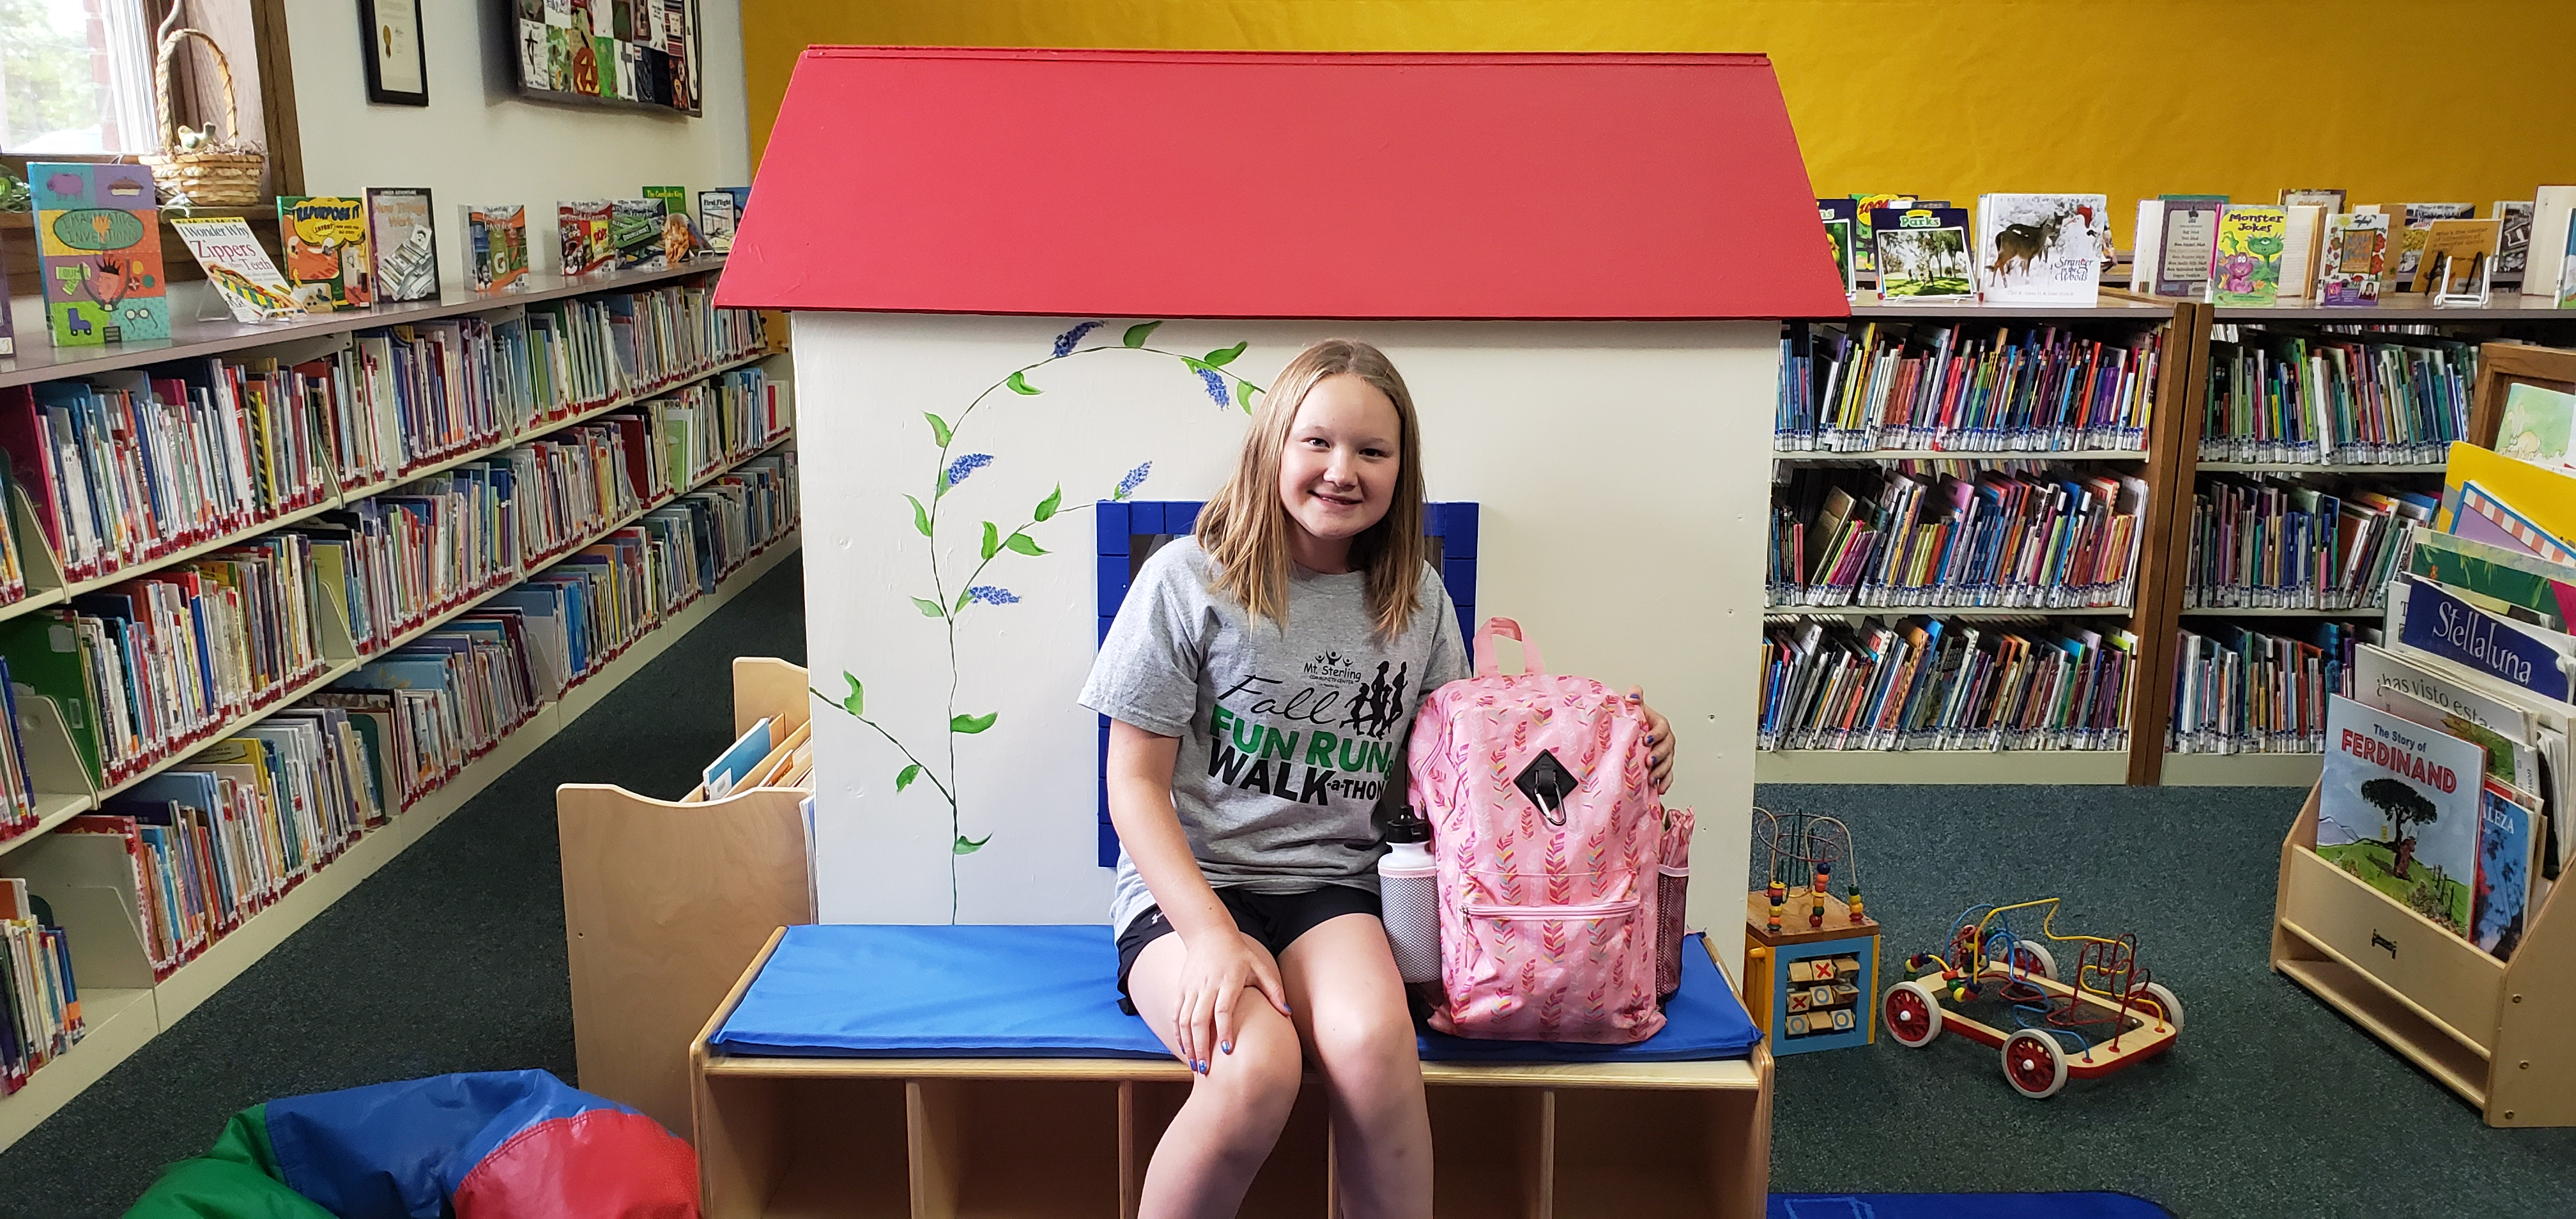 Sadie Mason was the second recipient from our drawing at the conclusion of the Summer Reading Club. Congratulations to all of our summer reading program winners!